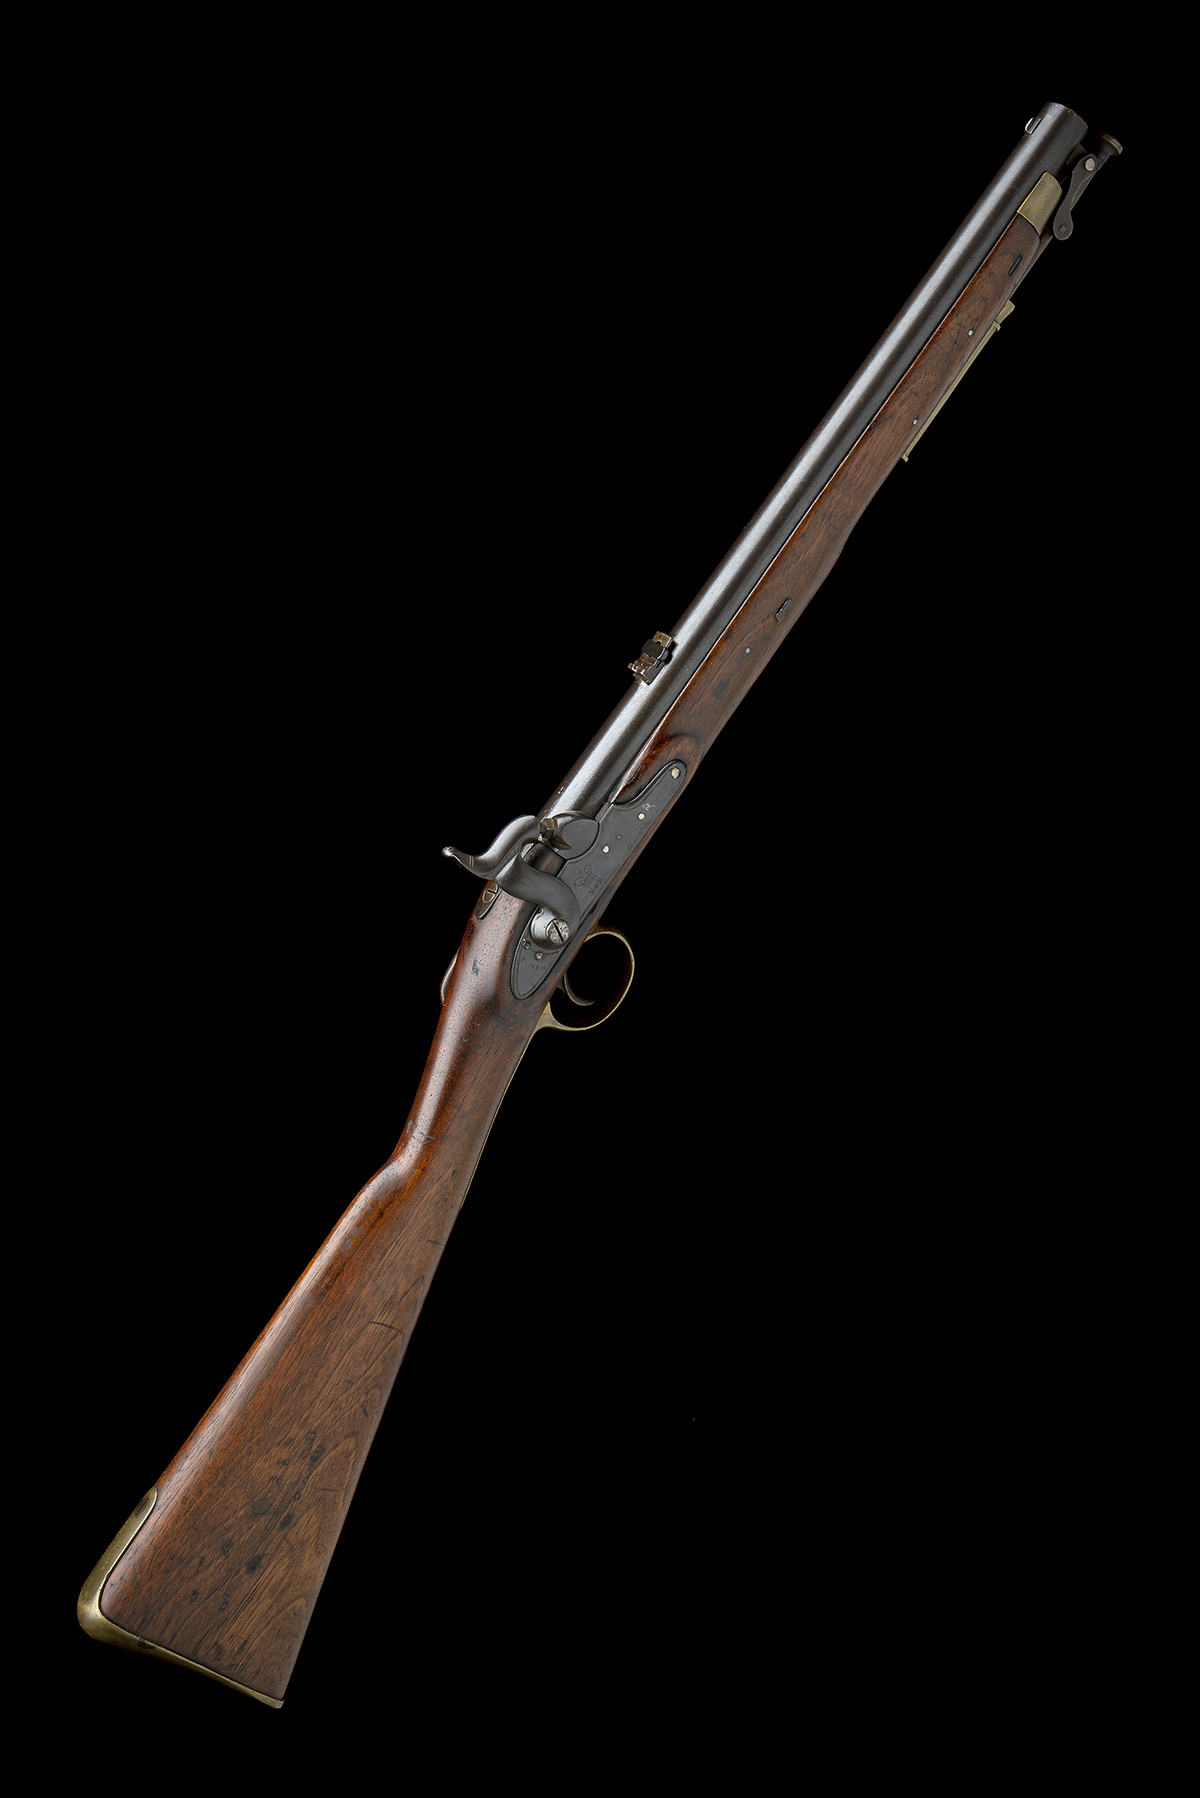 TOWER ARMOURIES, LONDON A .685 PERCUSSION RIFLED SADDLE-CARBINE, MODEL 'PAGET CAVALRY CARBINE',